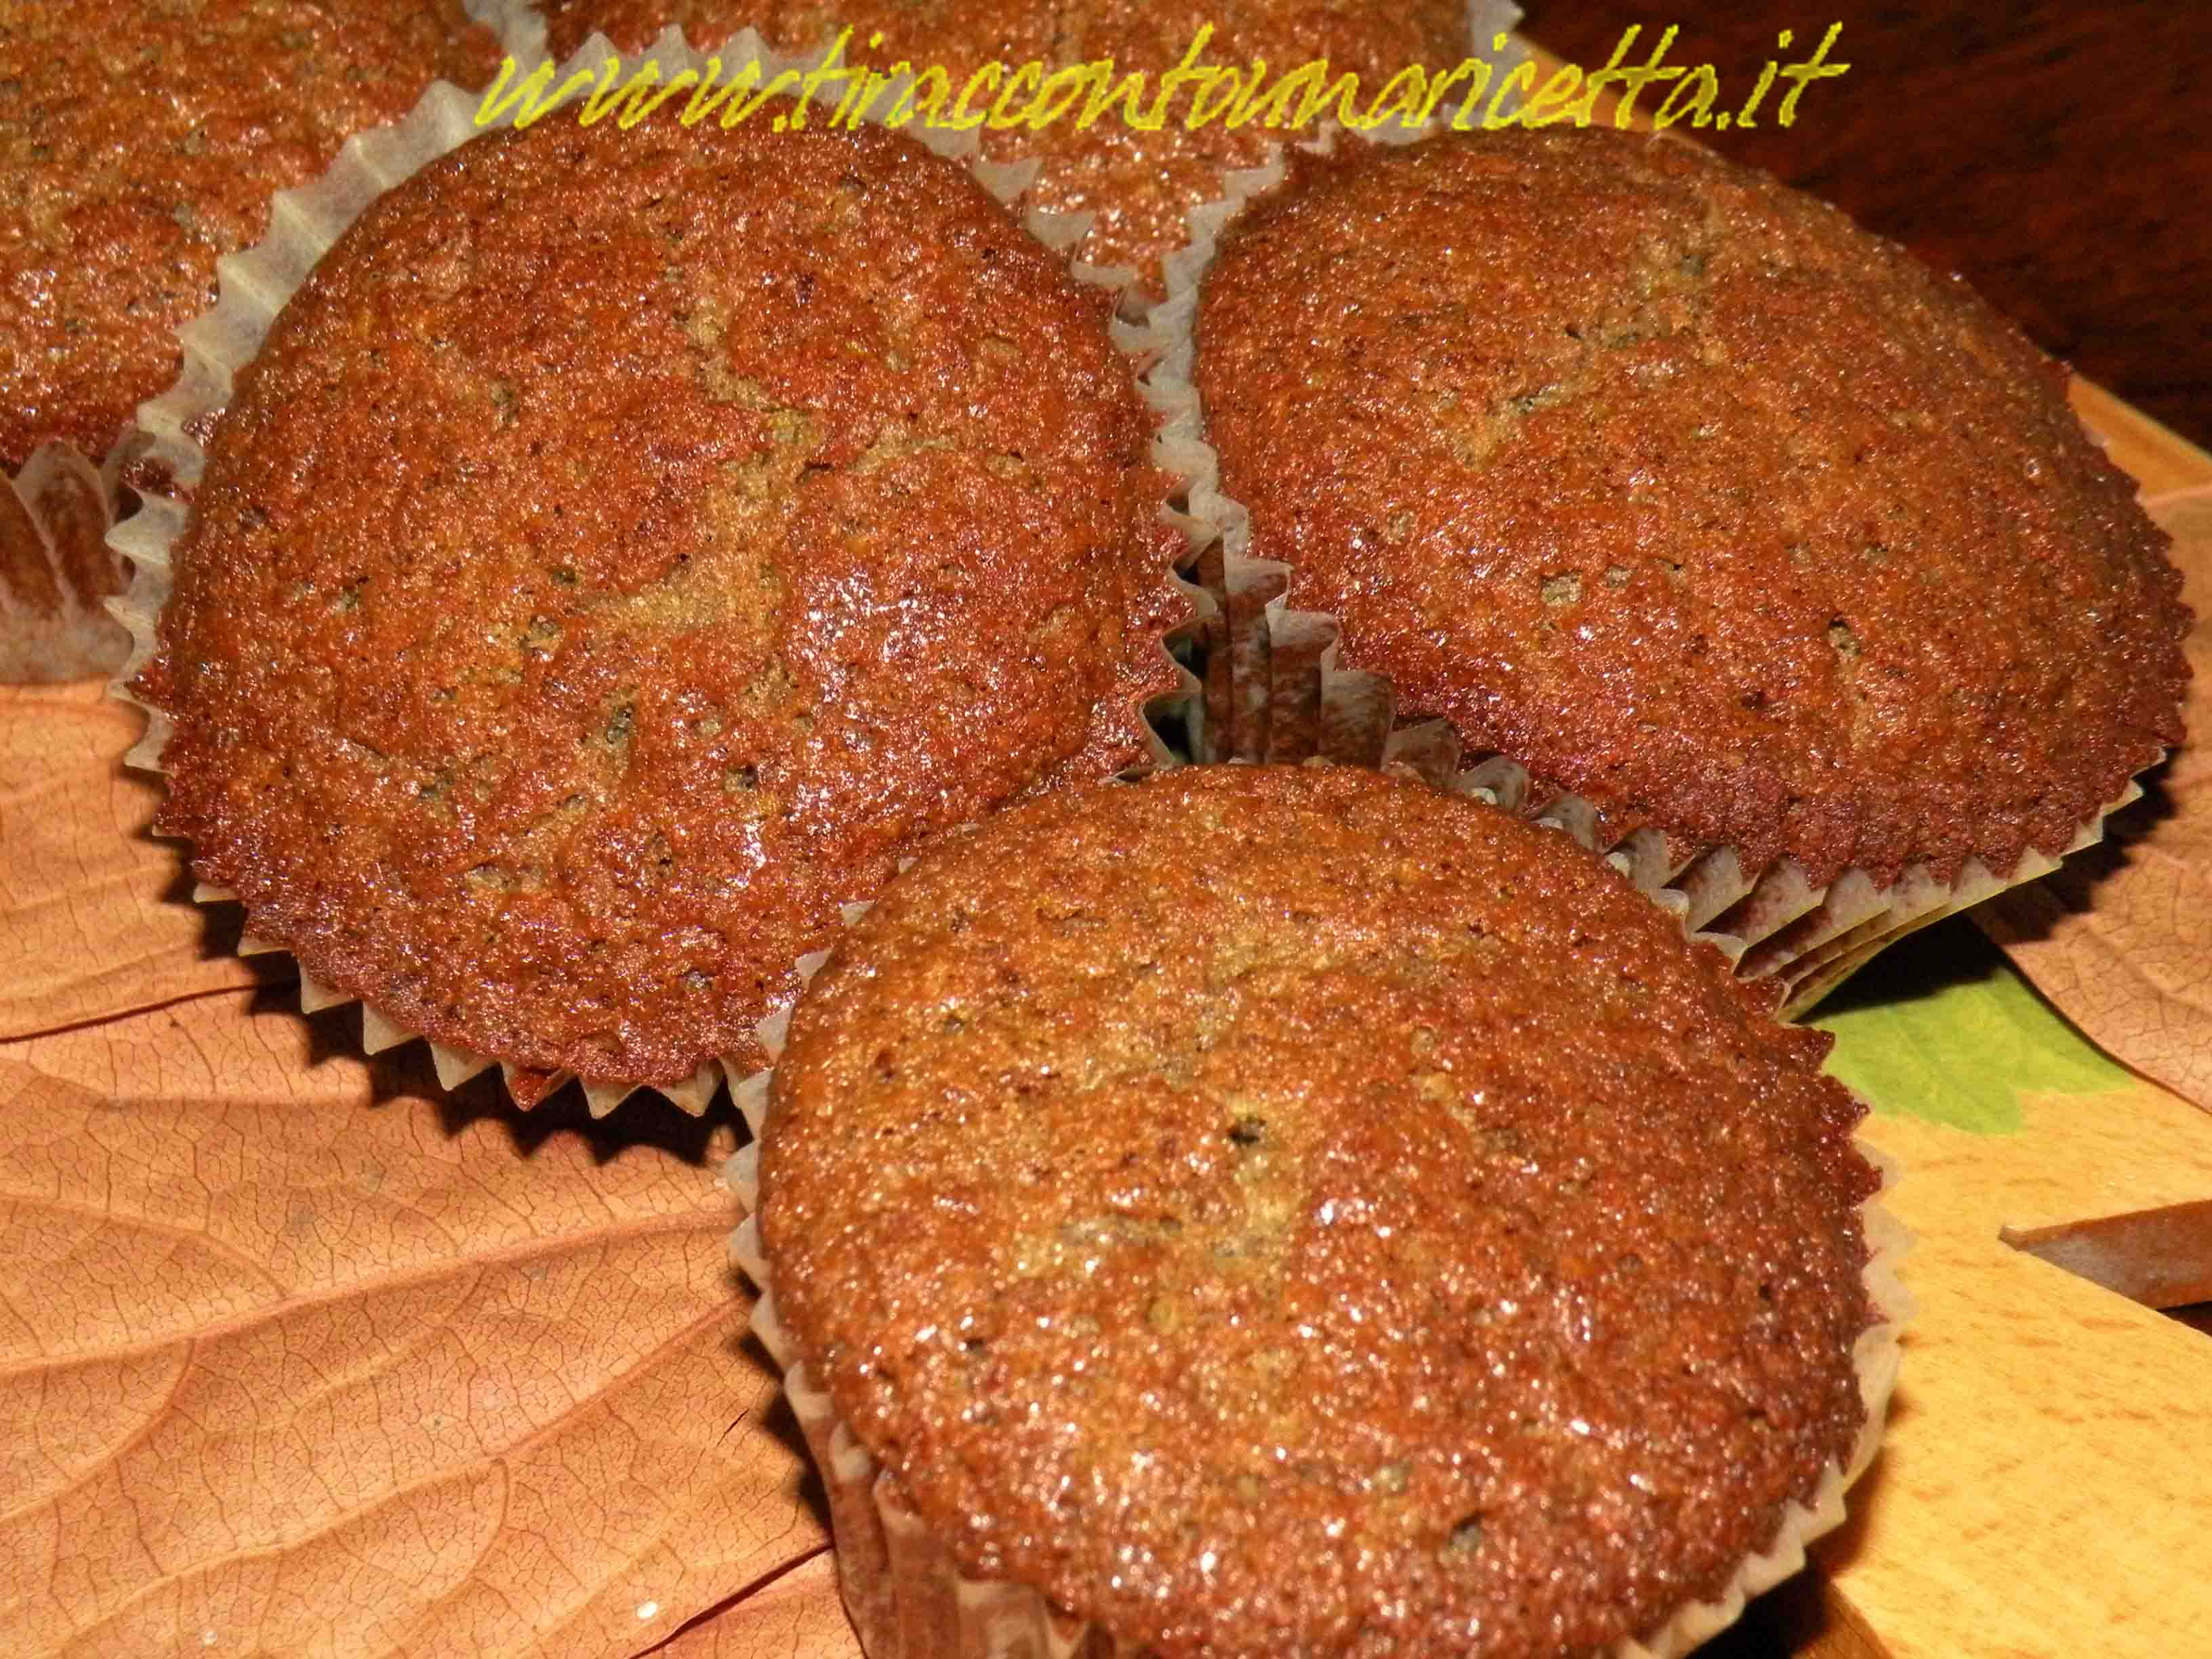 Muffin with buckwheat, flour of pistachios and strawberries for celiac